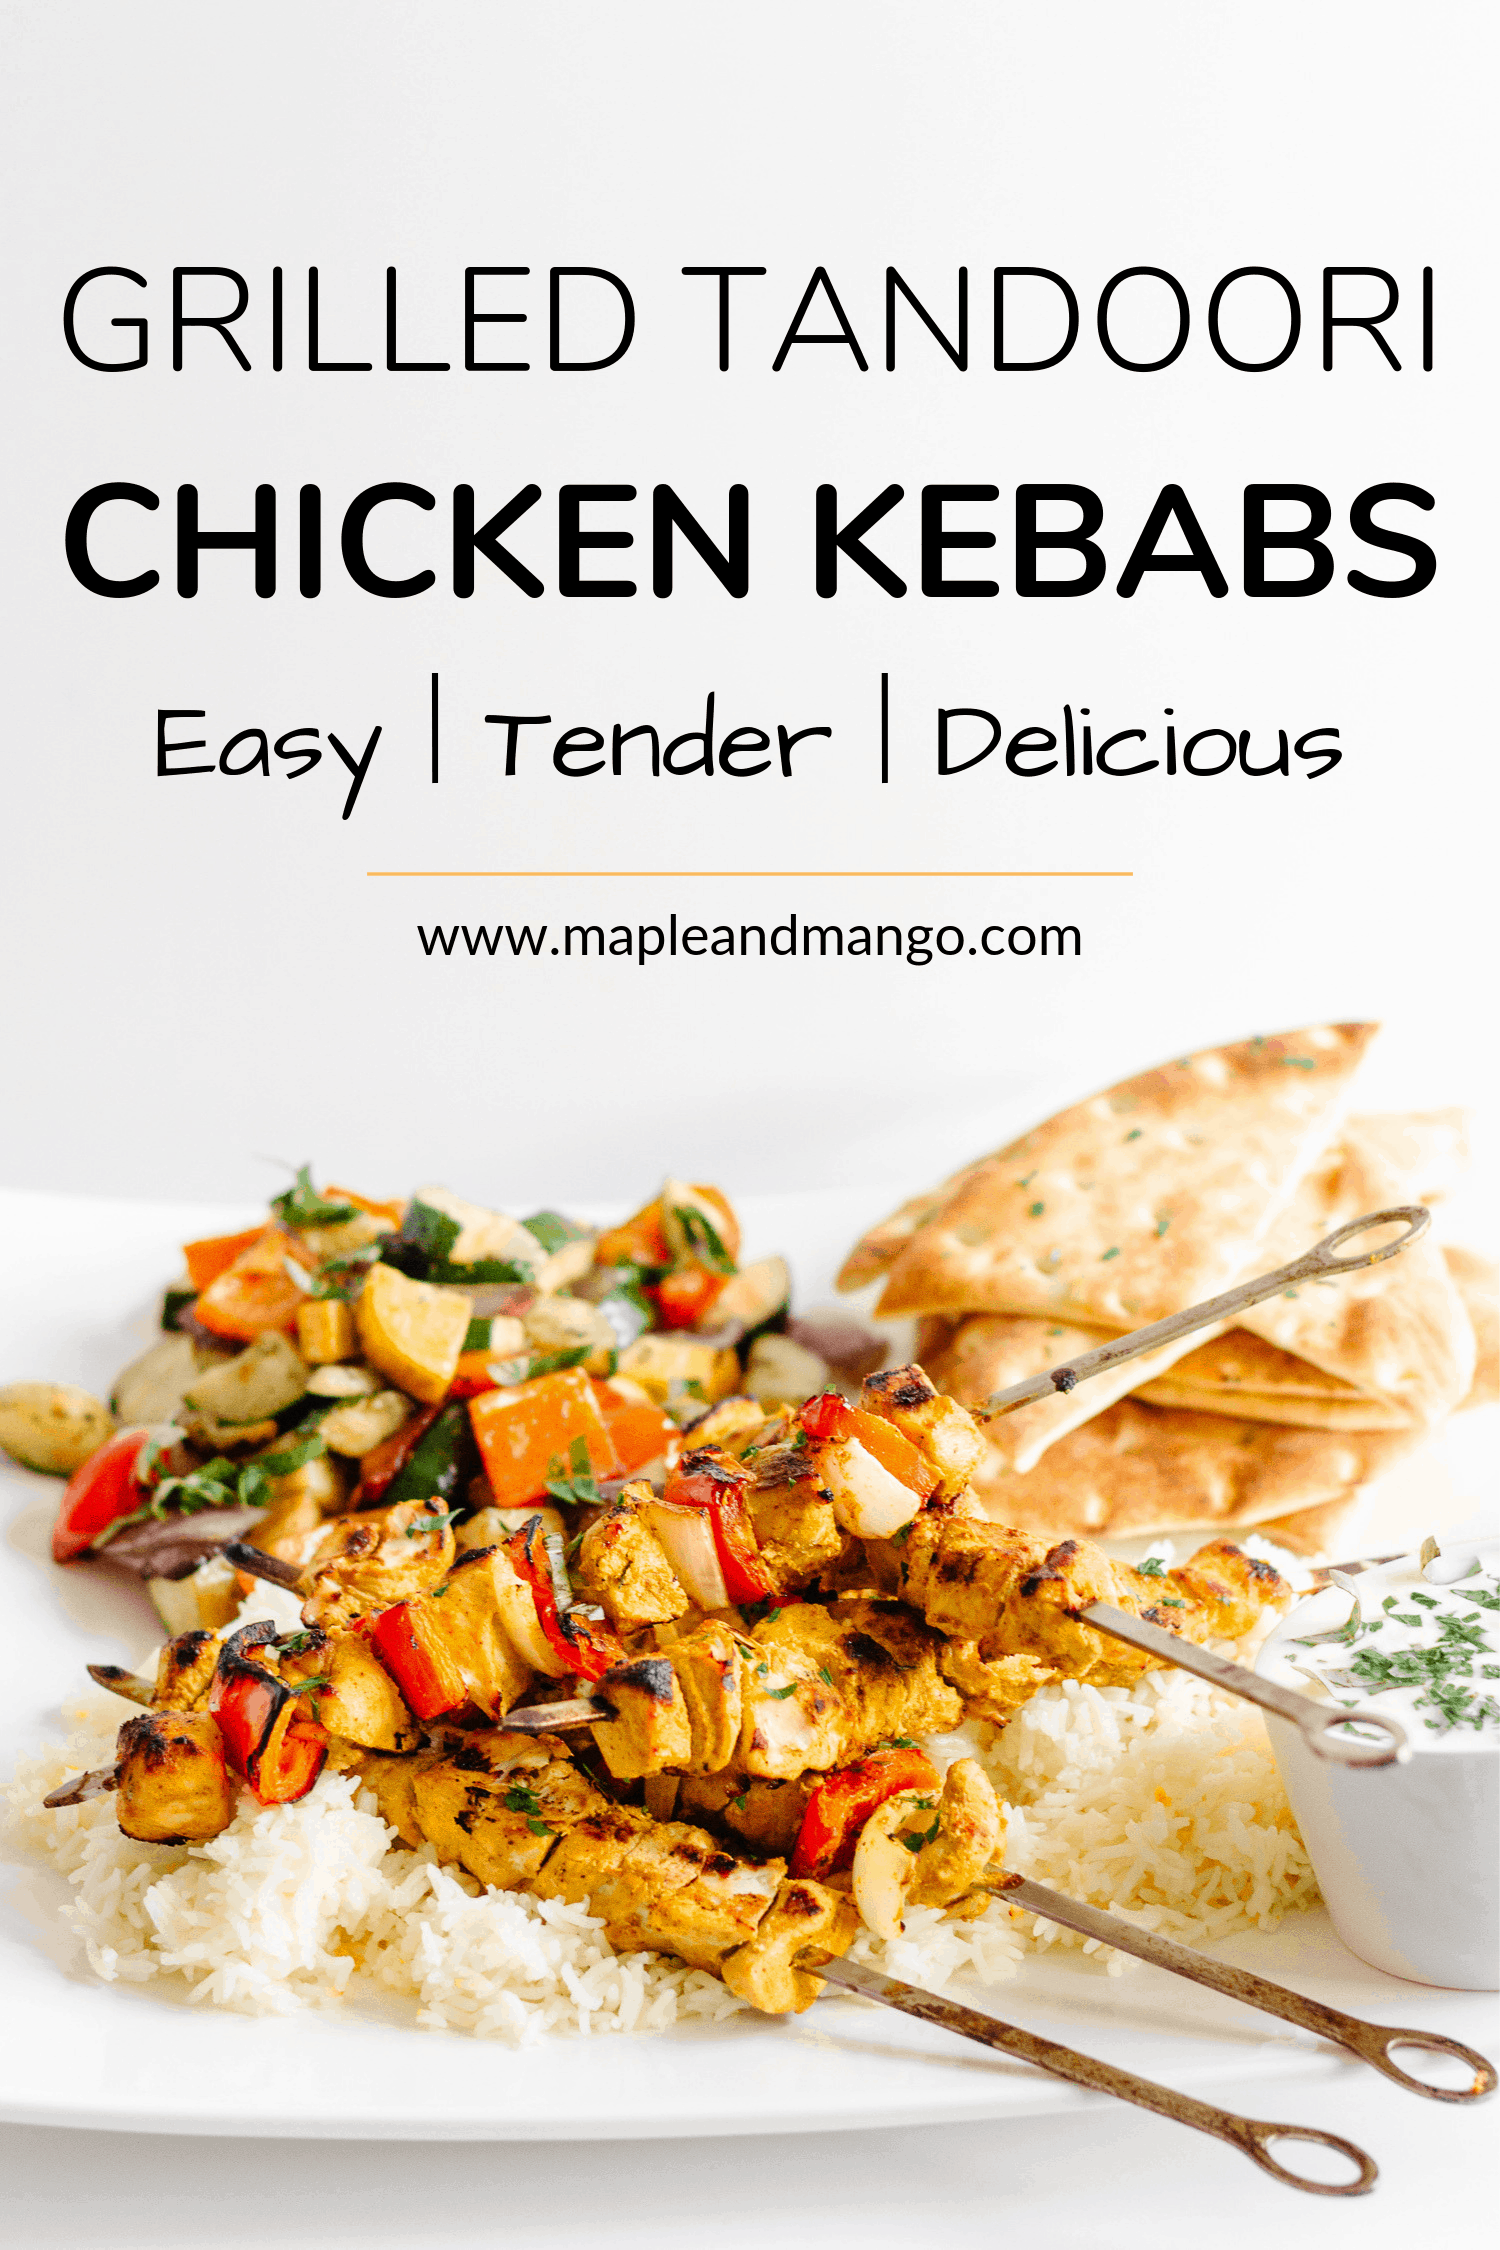 Pinterest image for Grilled Tandoori Chicken Kebabs